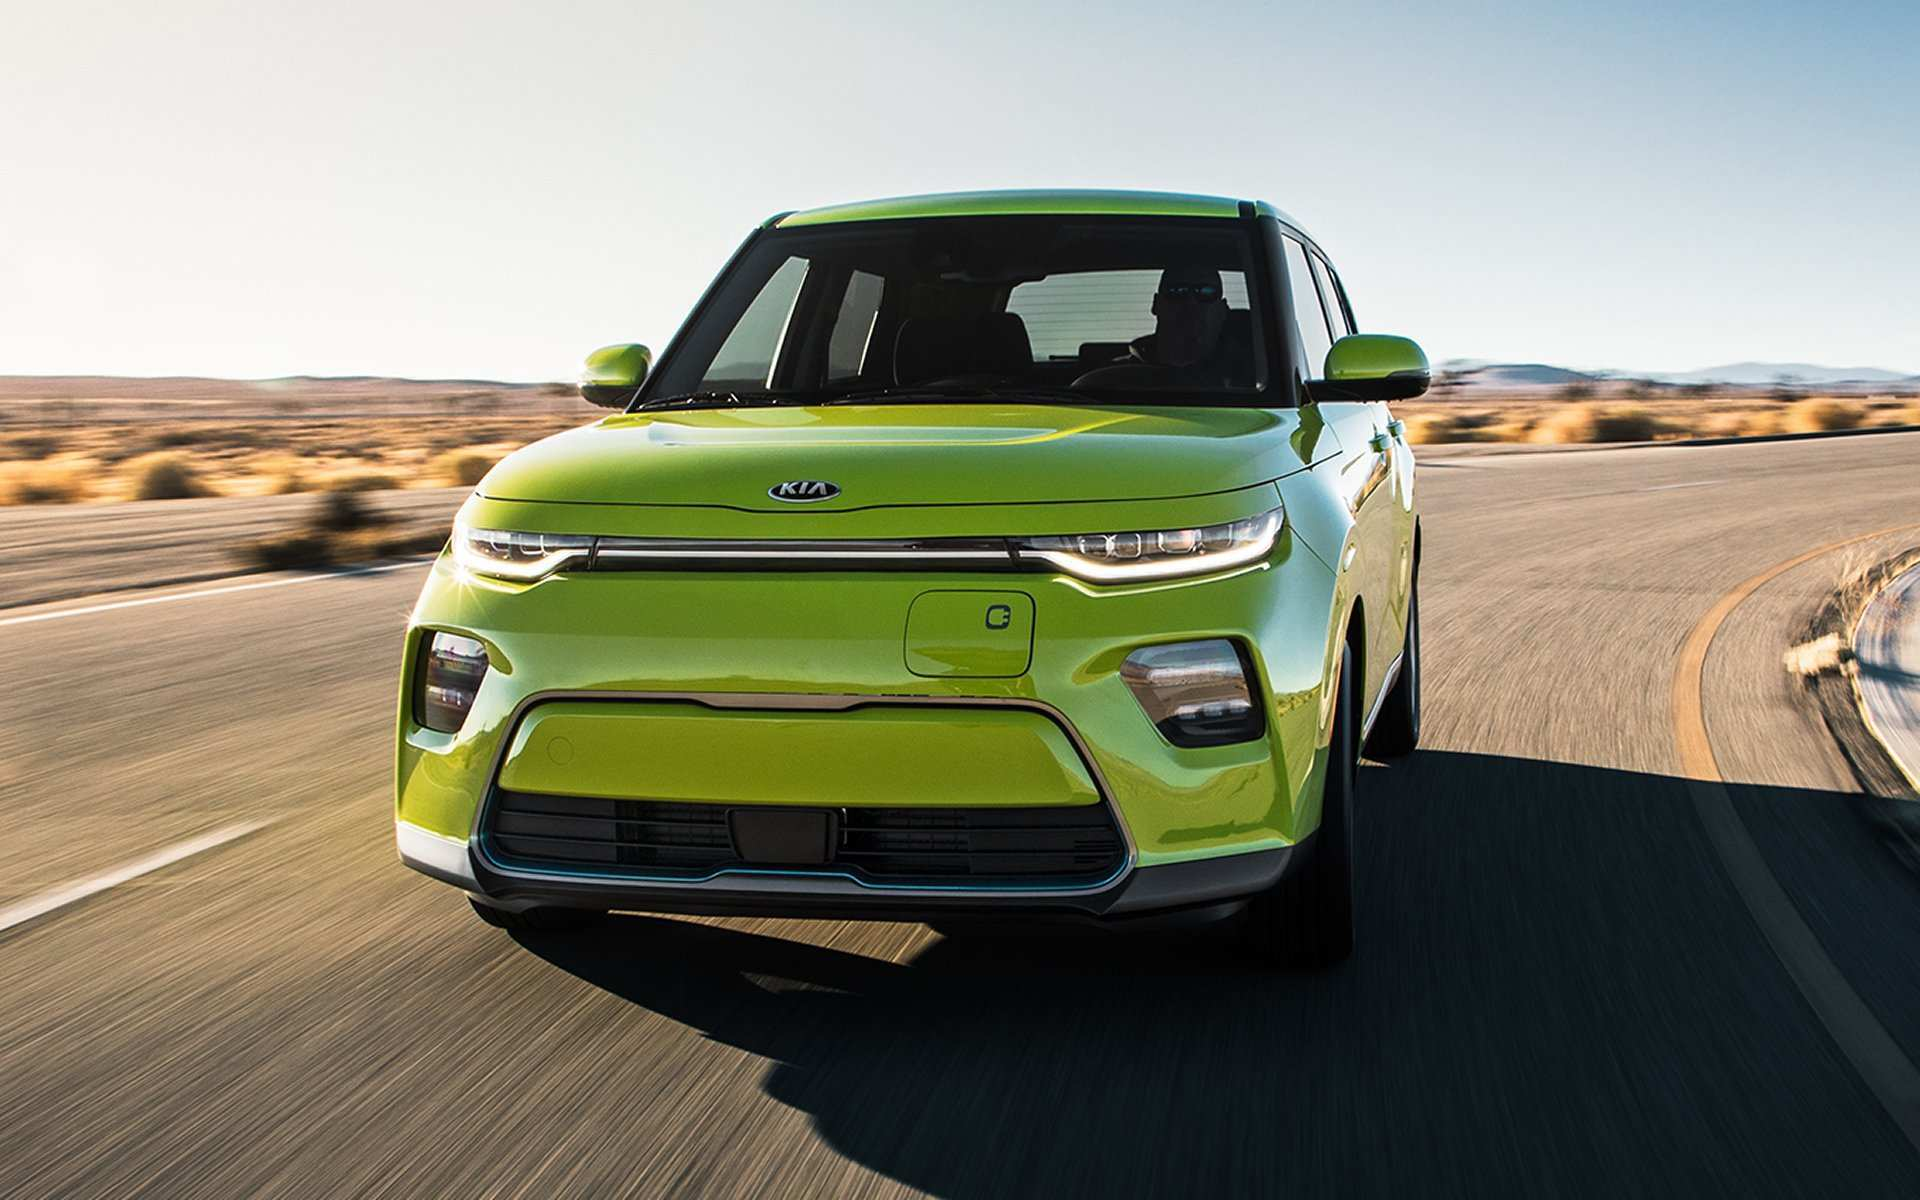 23 Great 2020 Kia Vehicles Images for 2020 Kia Vehicles